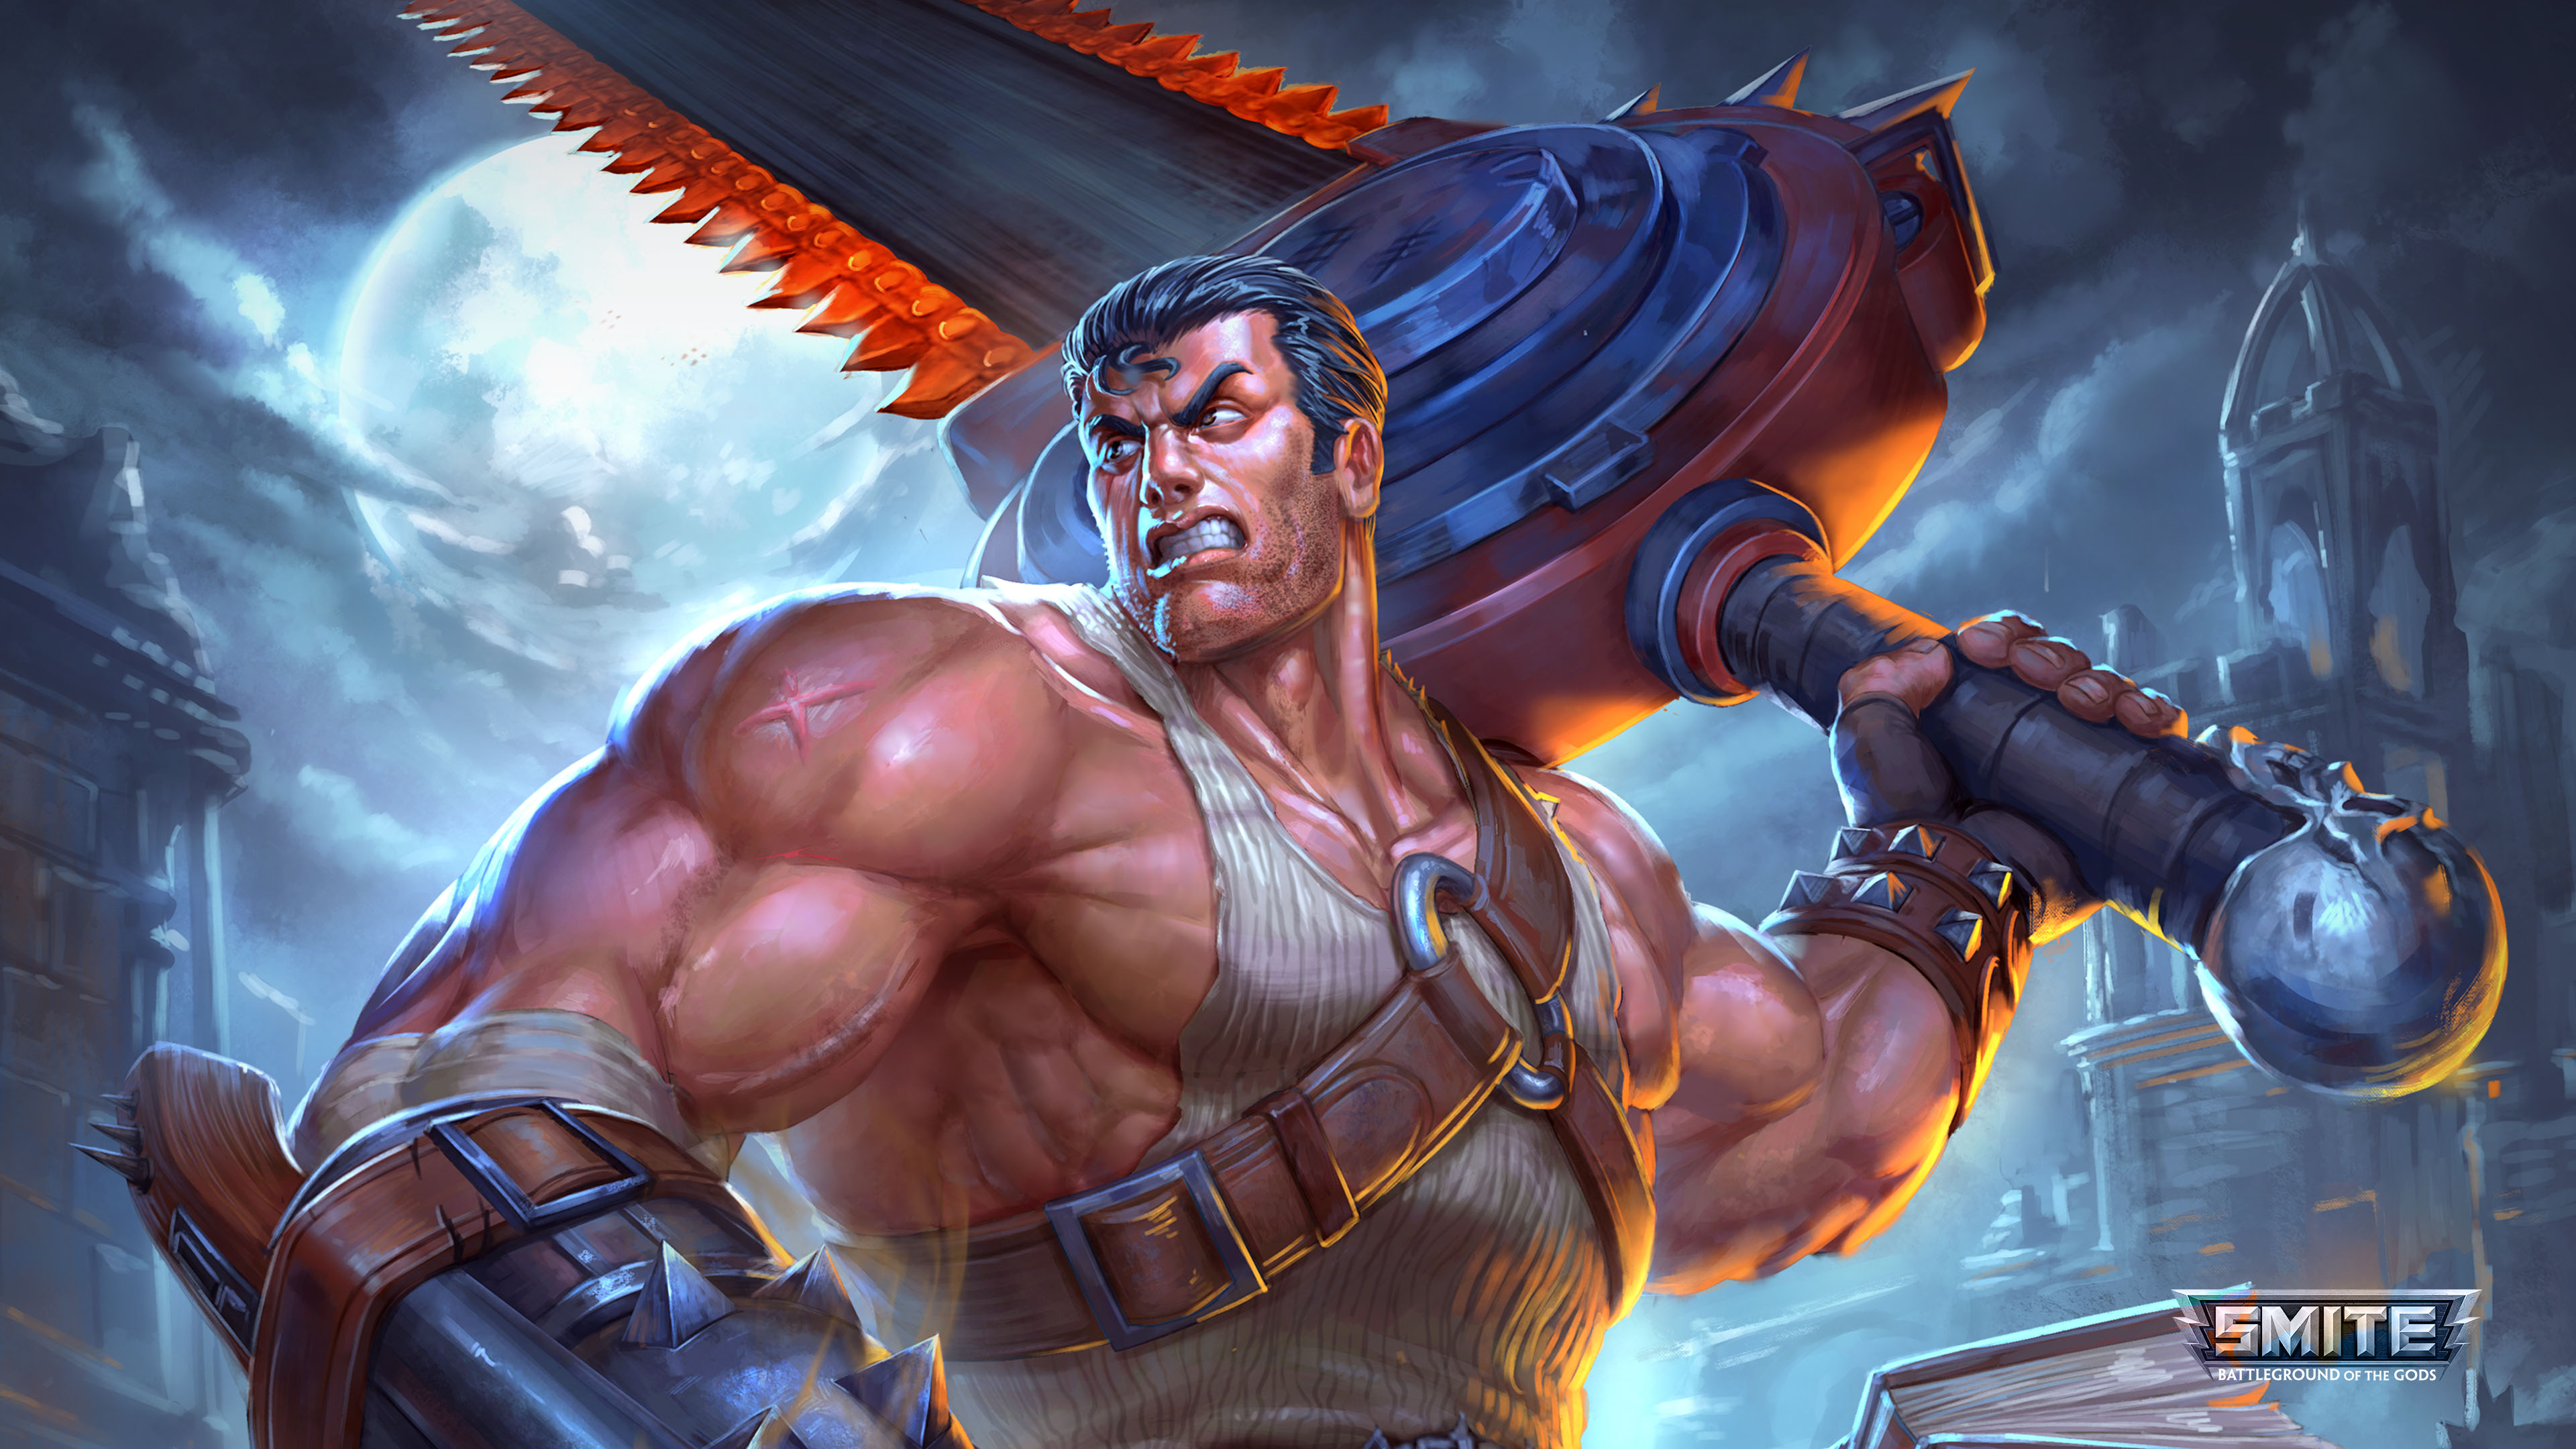 Smite 4k ultra hd wallpaper and background image 3840x2160 id774716 video game smite wallpaper voltagebd Gallery